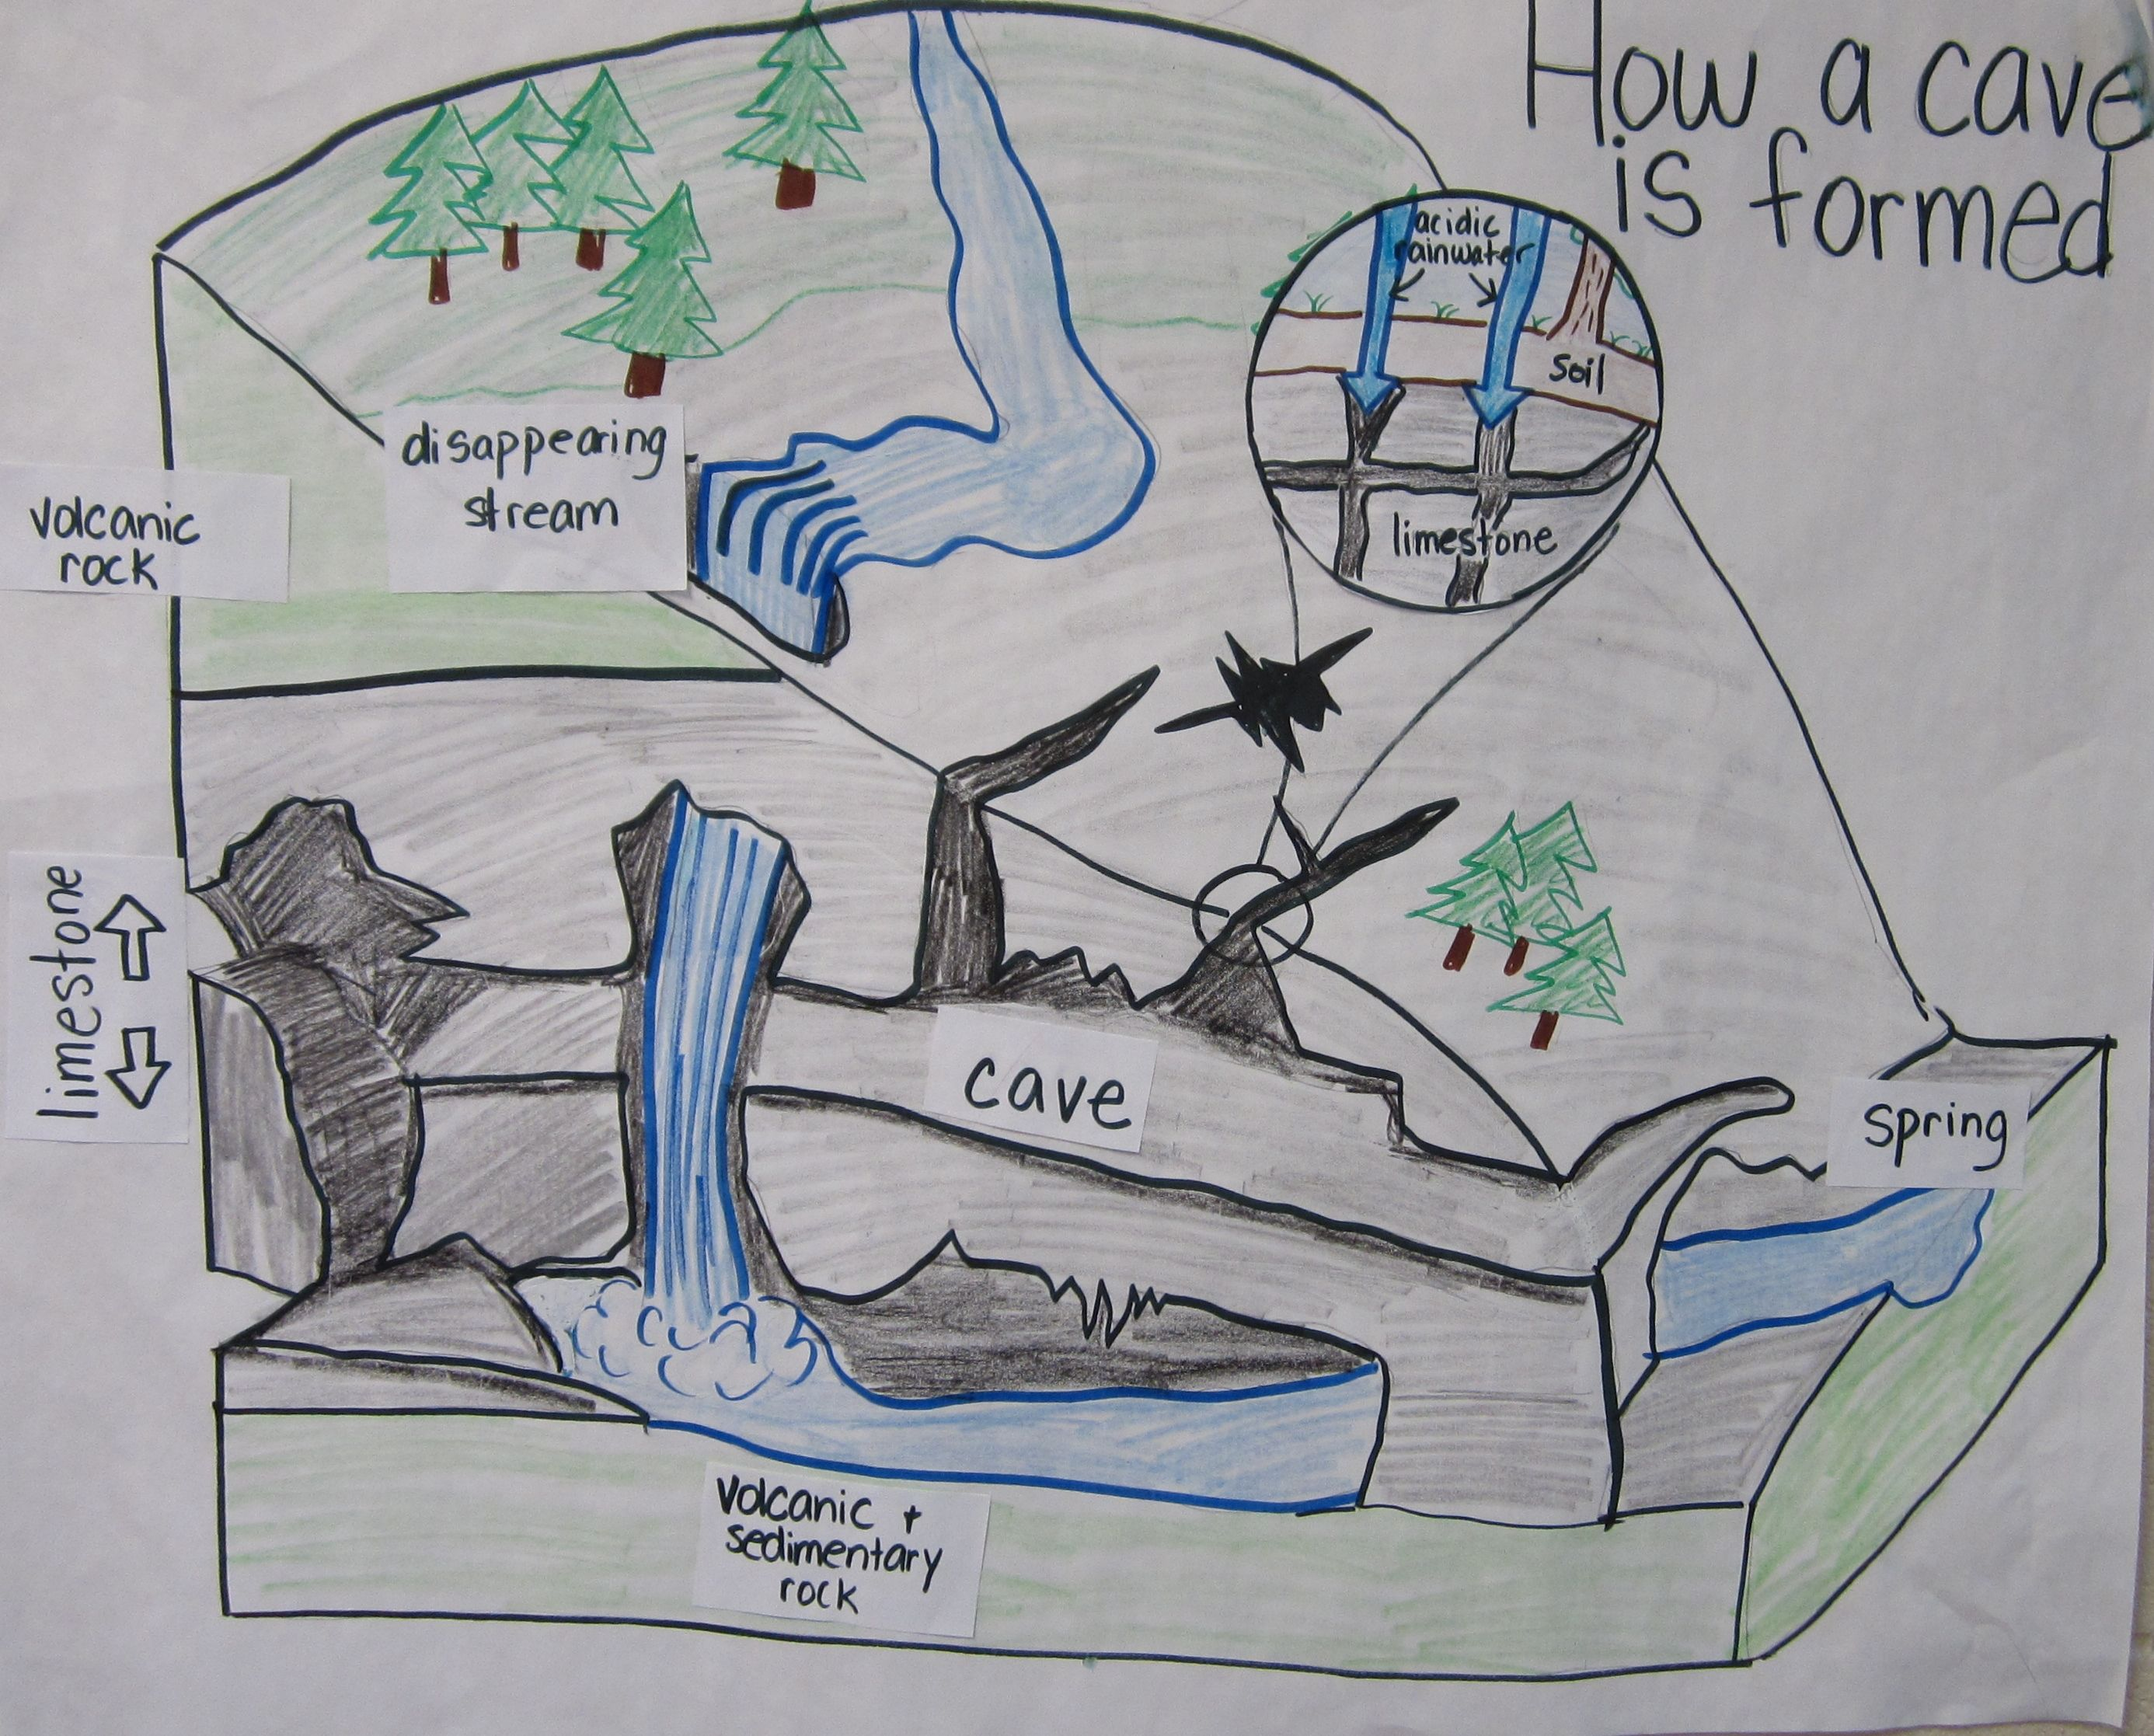 How a Cave is Formed anchor chart | Earth science classroom, Science  classroom, Earth sciencePinterest